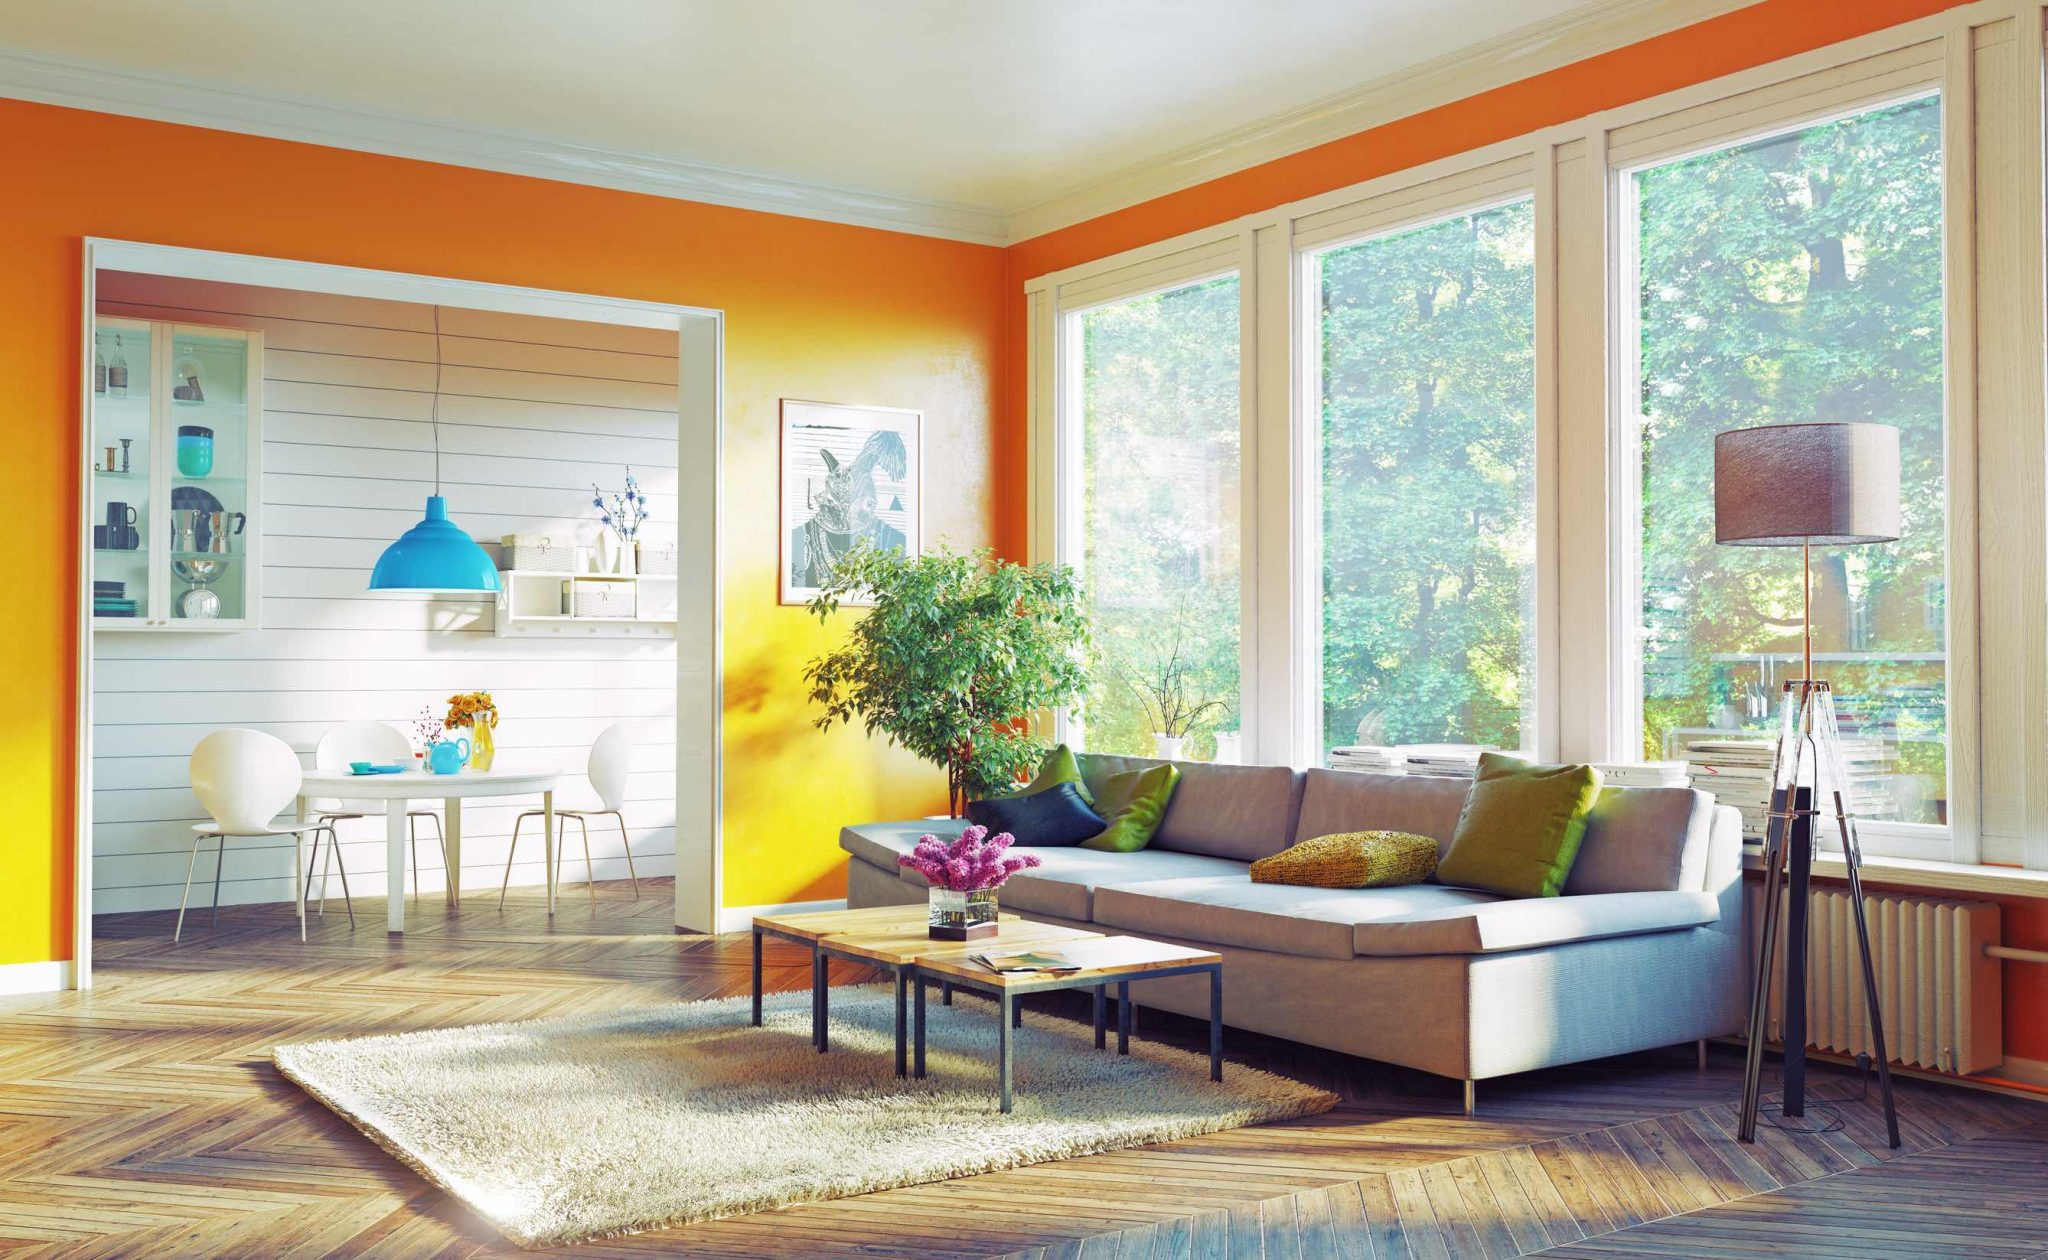 Top Benefits of Residential Window Tint in the Denver, Colorado Area